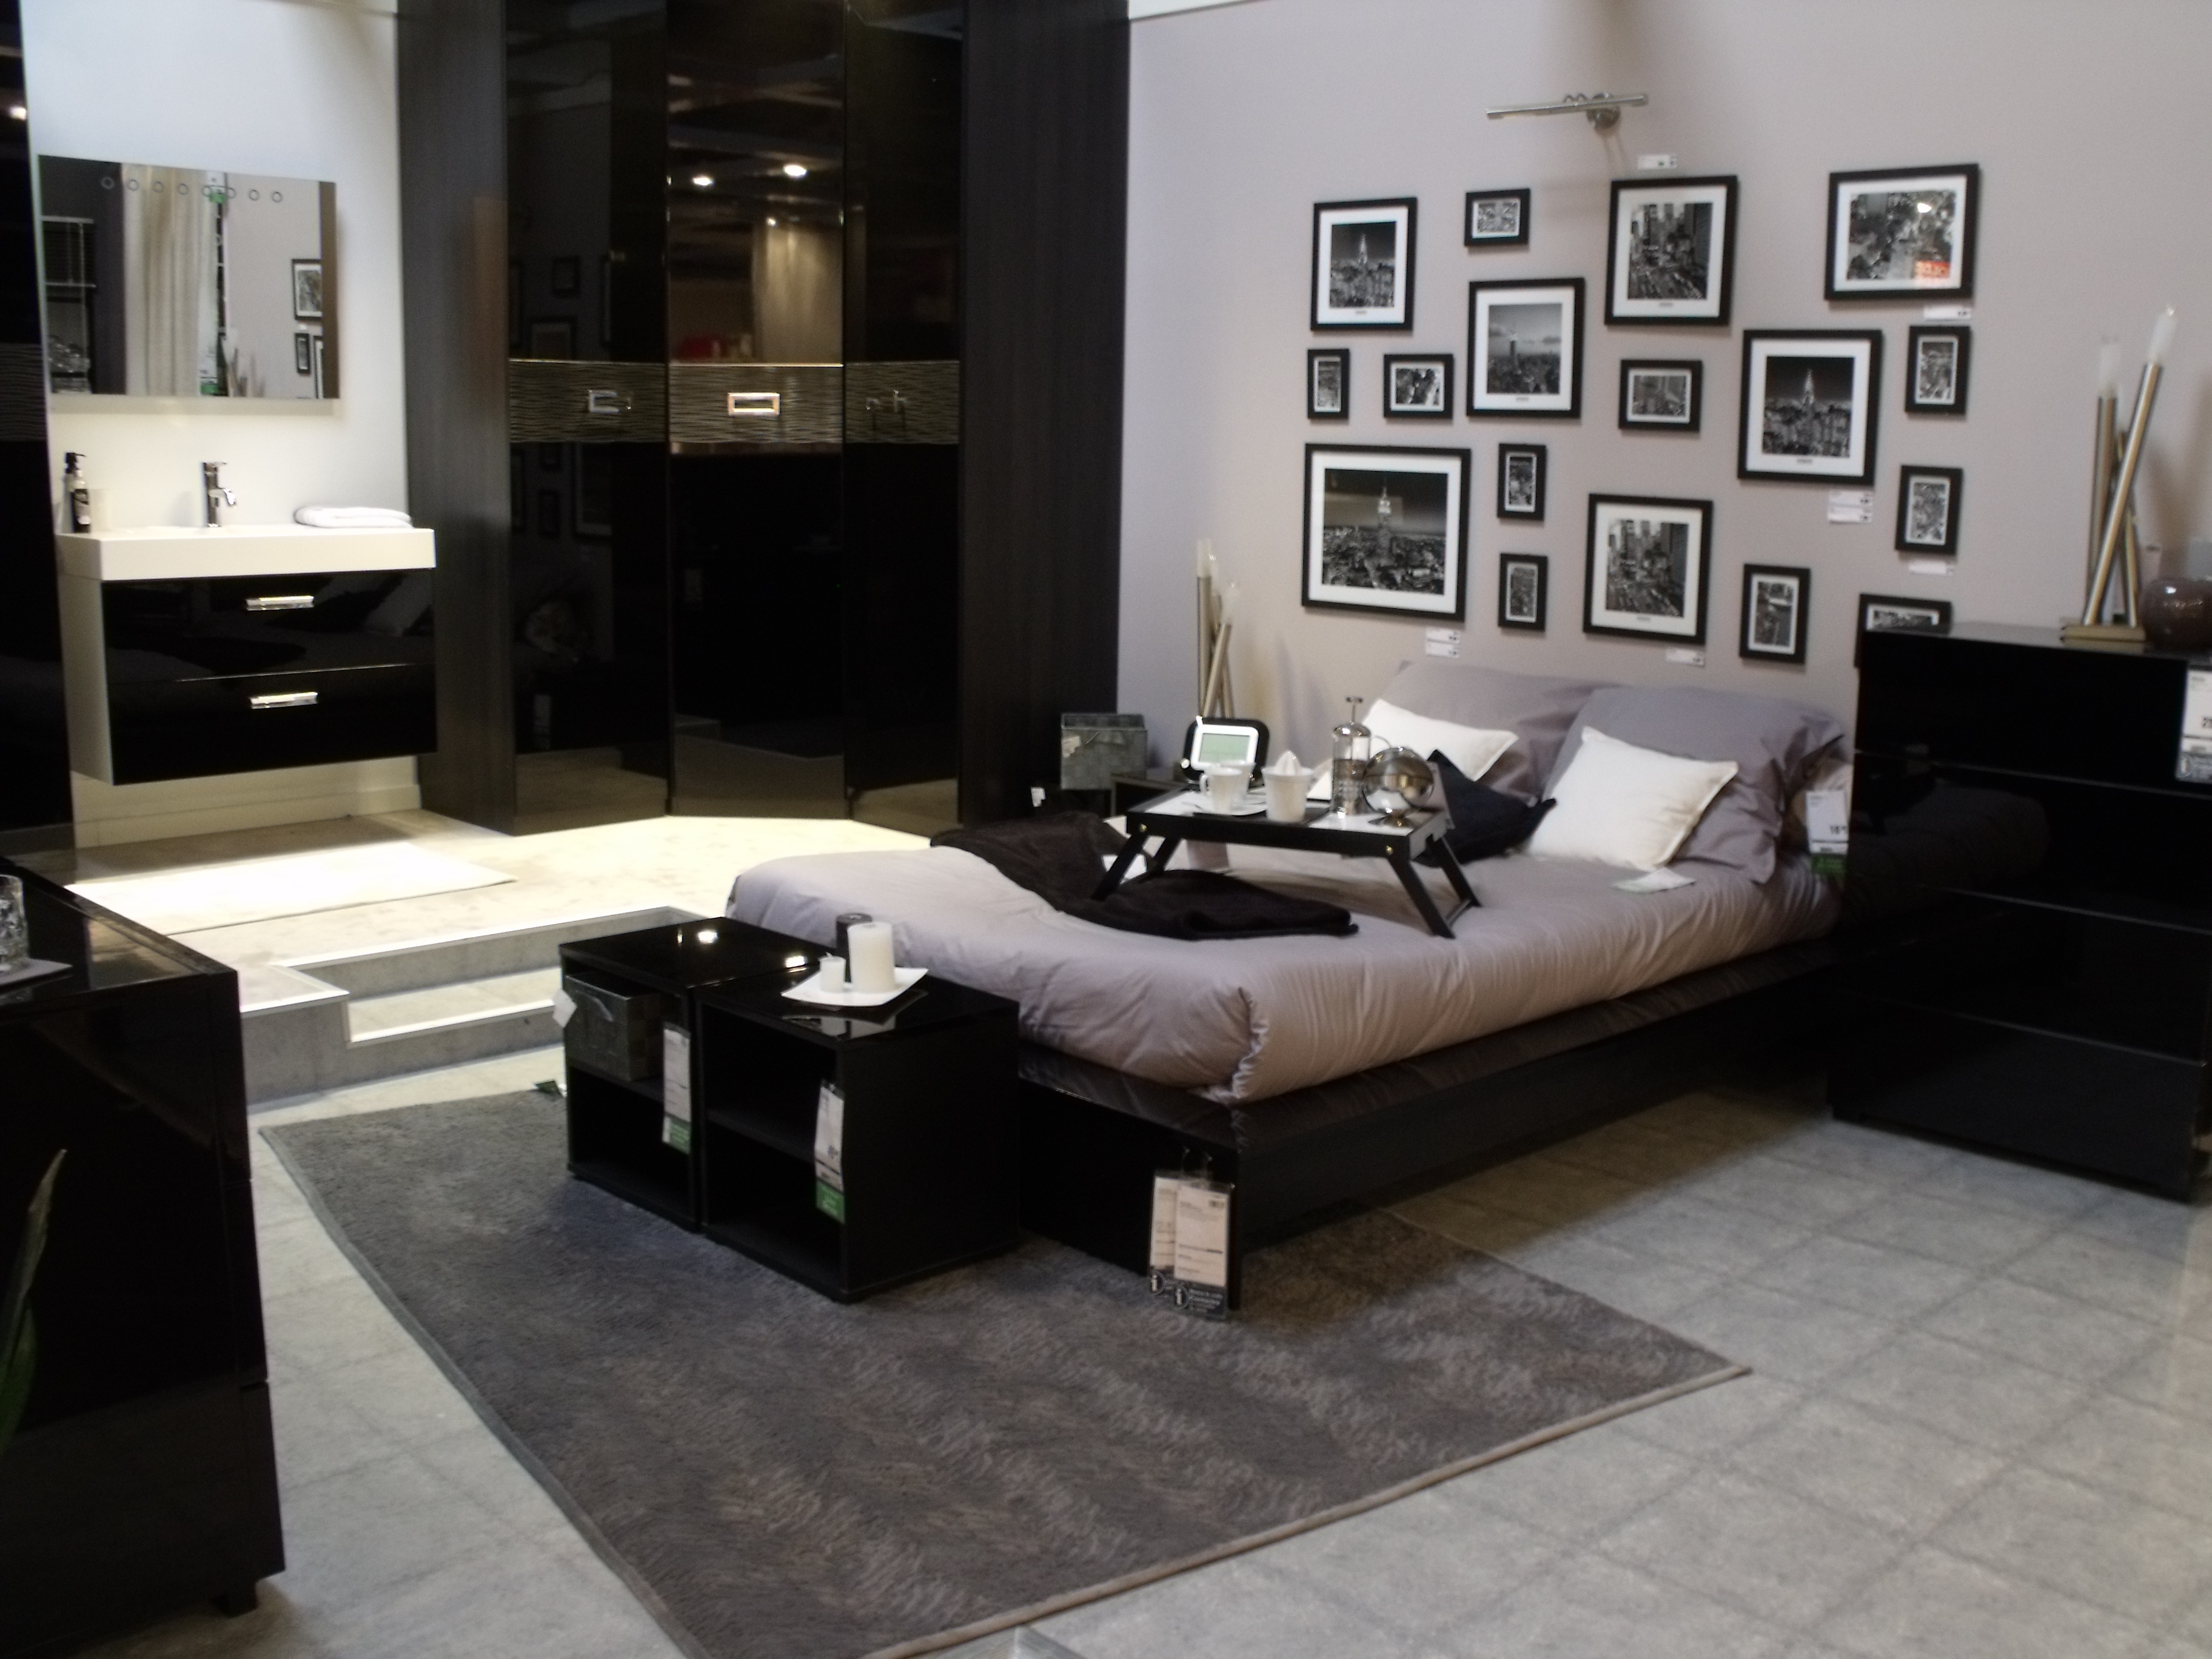 d coration d une chambre contemporaine chic. Black Bedroom Furniture Sets. Home Design Ideas